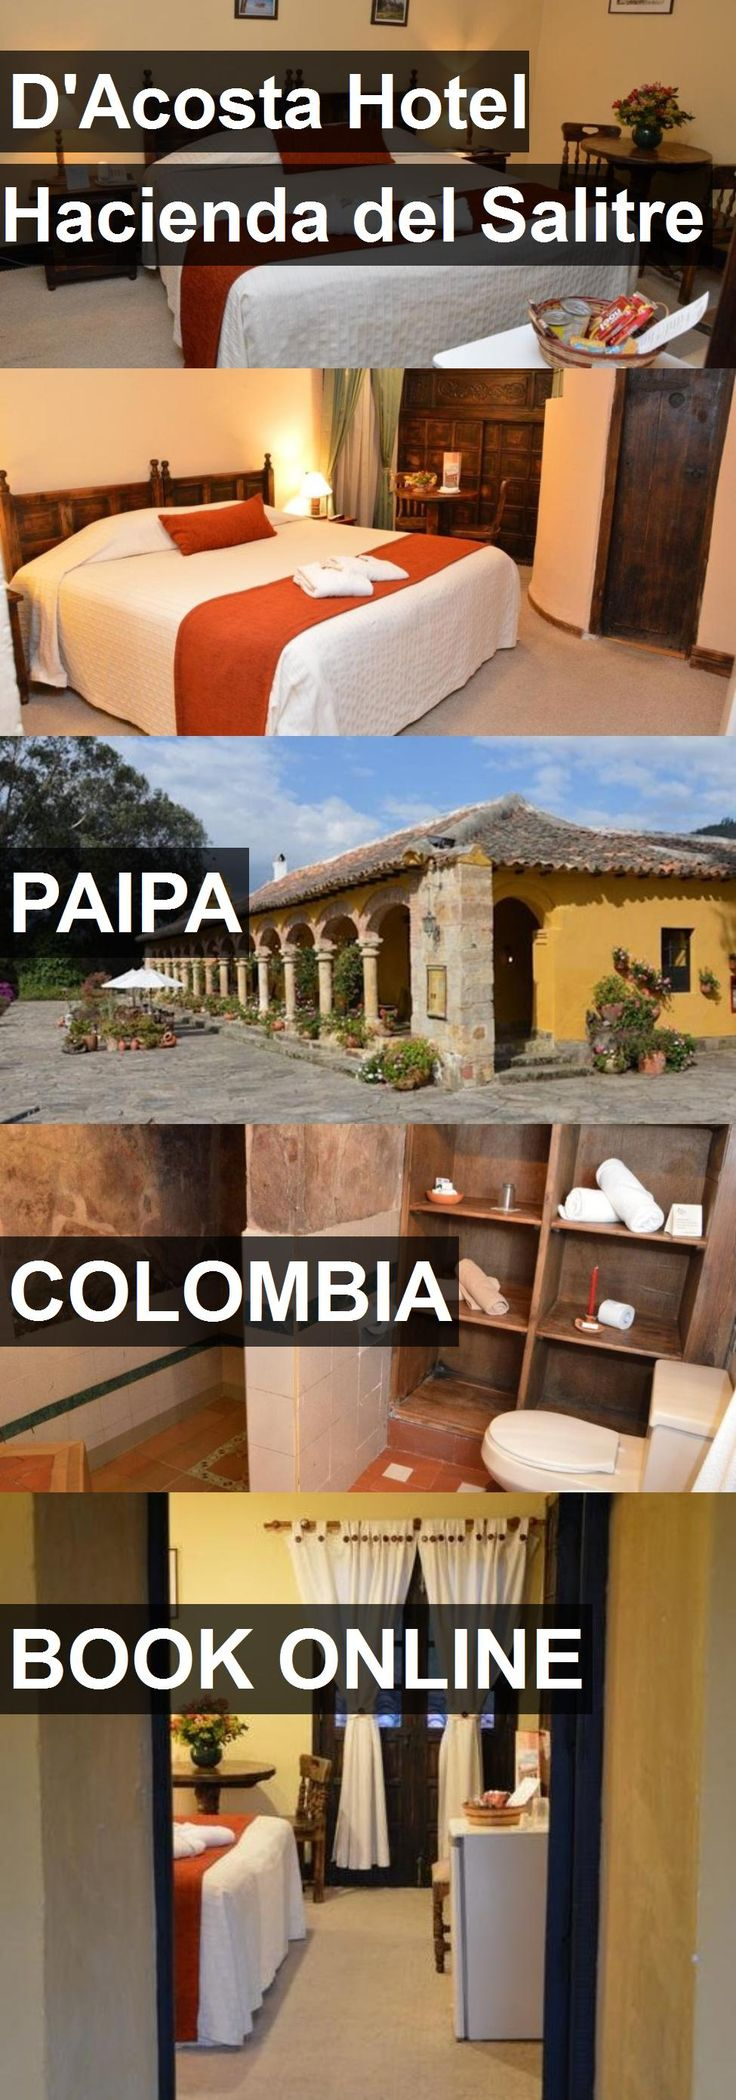 Hotel D'Acosta Hotel Hacienda del Salitre in Paipa, Colombia. For more information, photos, reviews and best prices please follow the link. #Colombia #Paipa #D'AcostaHotelHaciendadelSalitre #hotel #travel #vacation